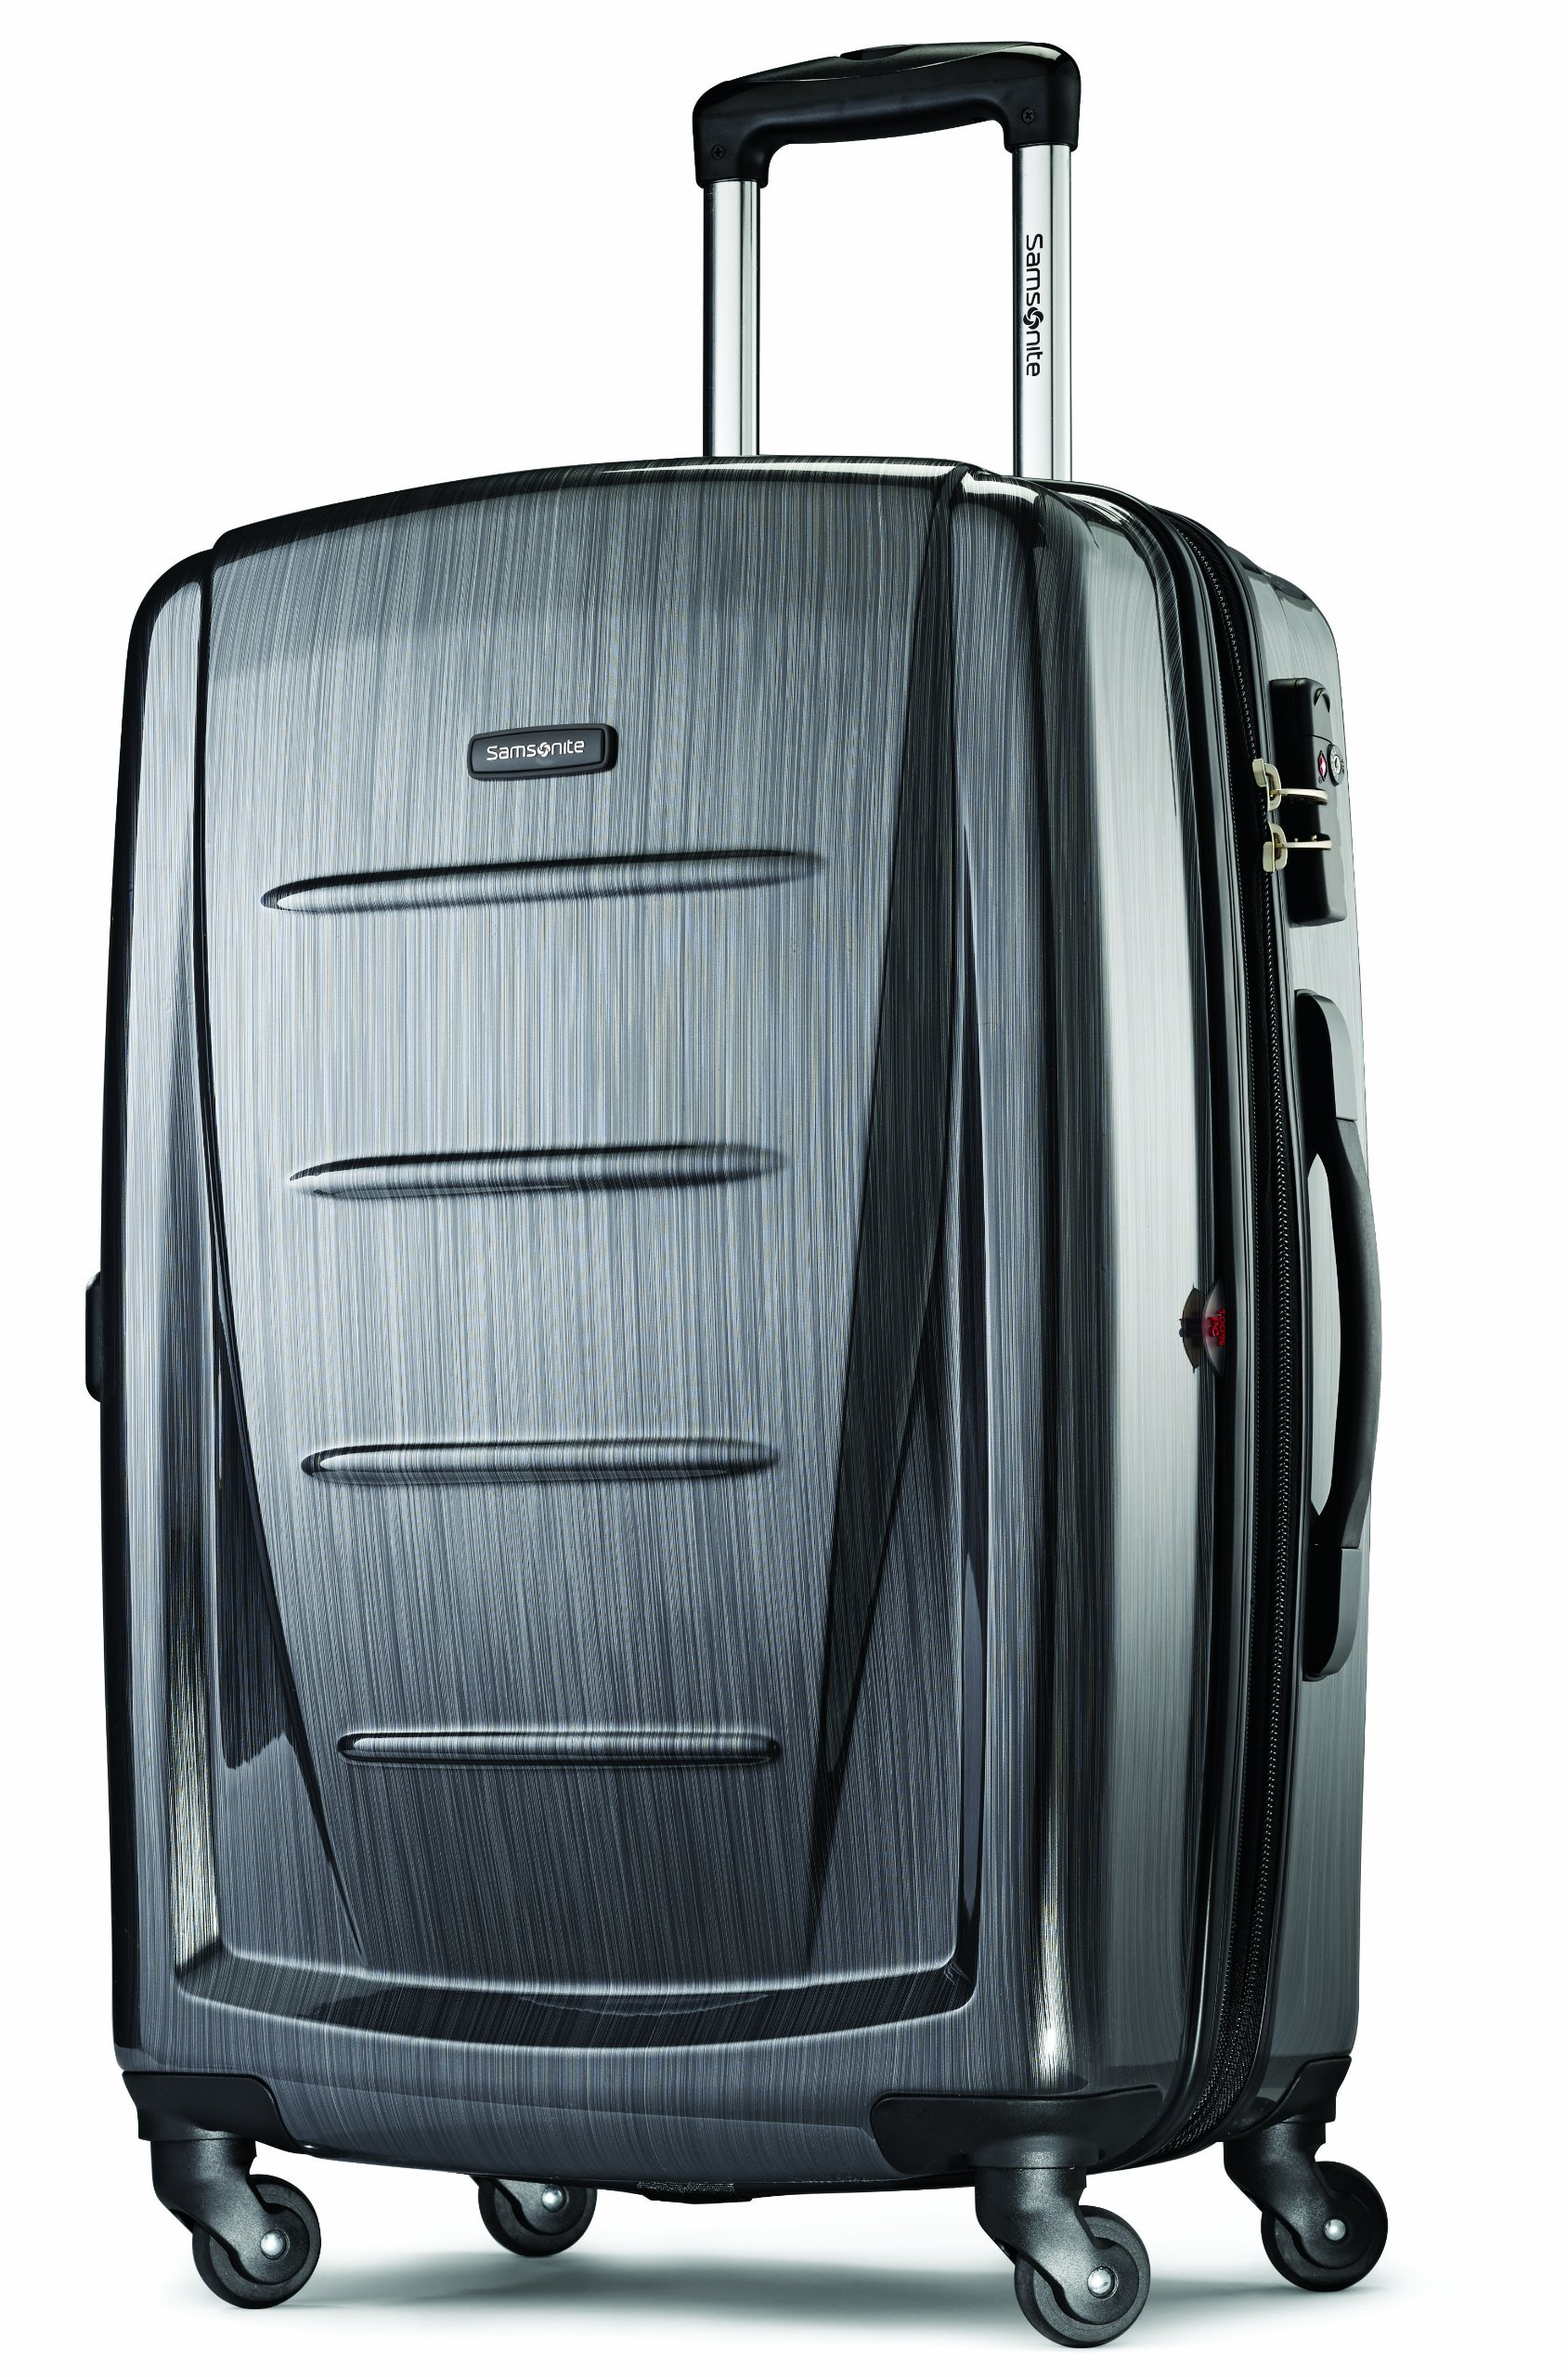 Samsonite Winfield 2 Hardside 28'' Luggage, Charcoal